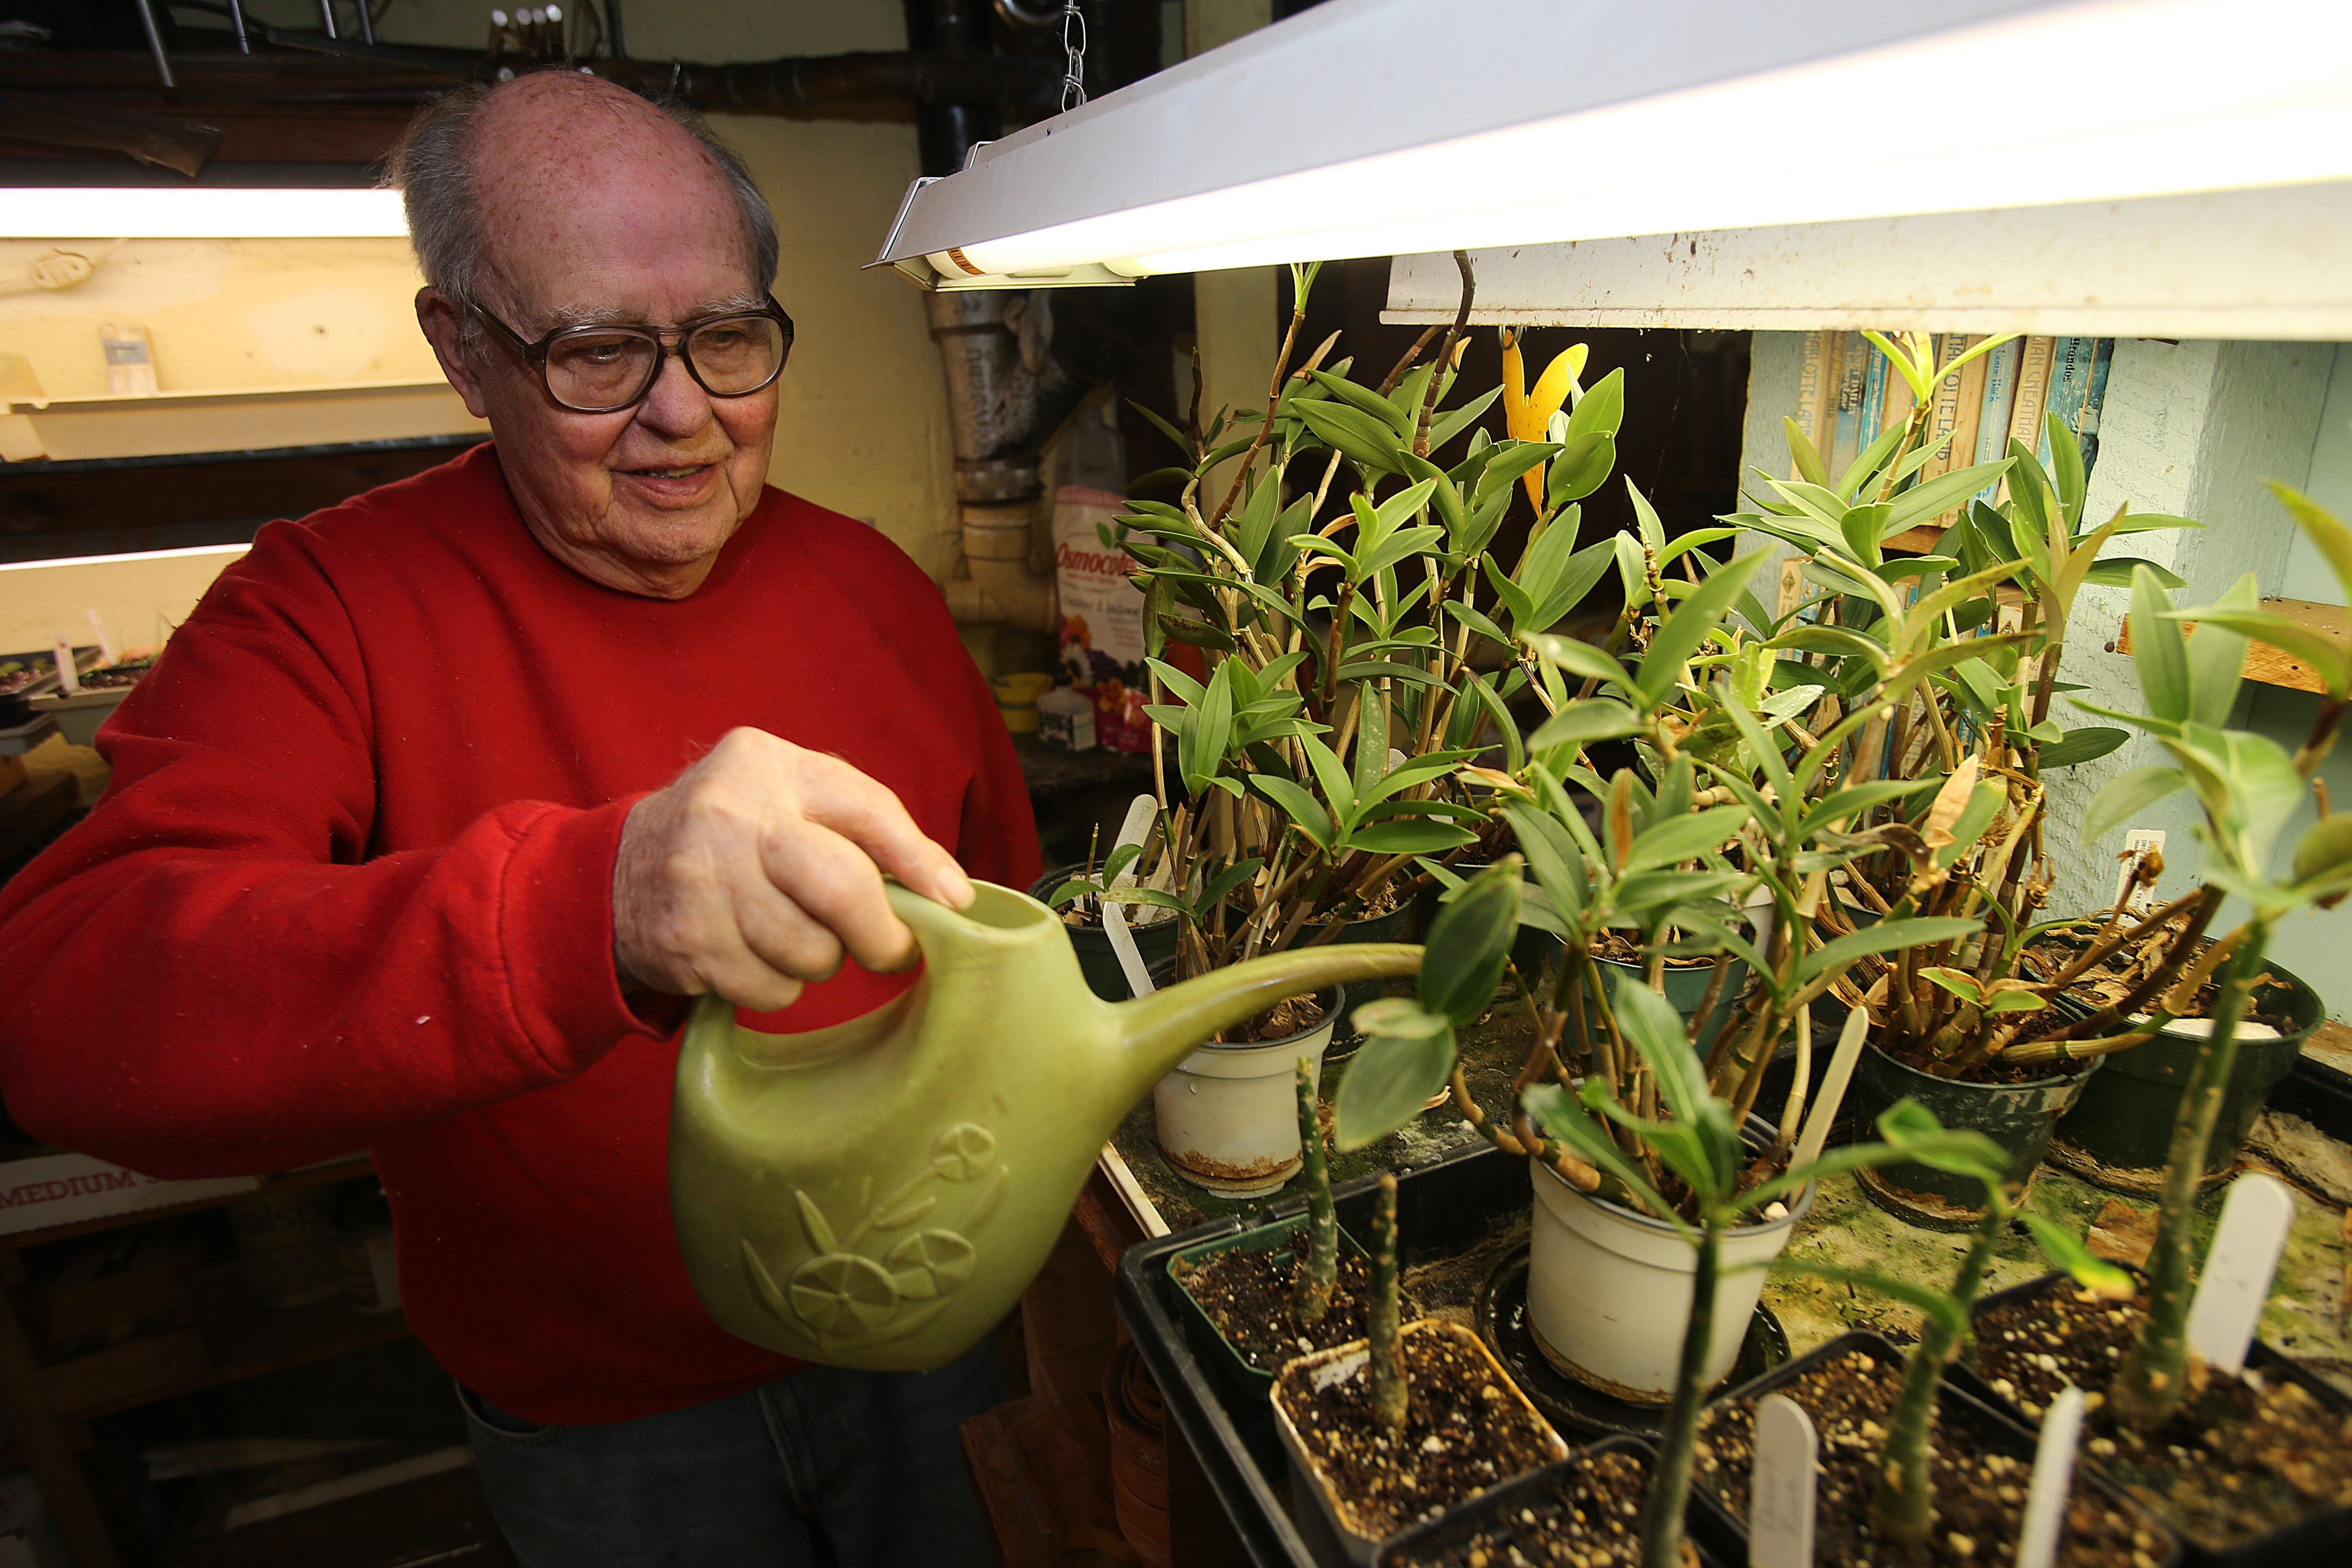 Master gardner Fran Evans tends to seedlings in the basement of his Hamburg home late last month. Evans has been planting and harvesting since he was a boy, but got deeply into gardening when he left his career as a chemist.